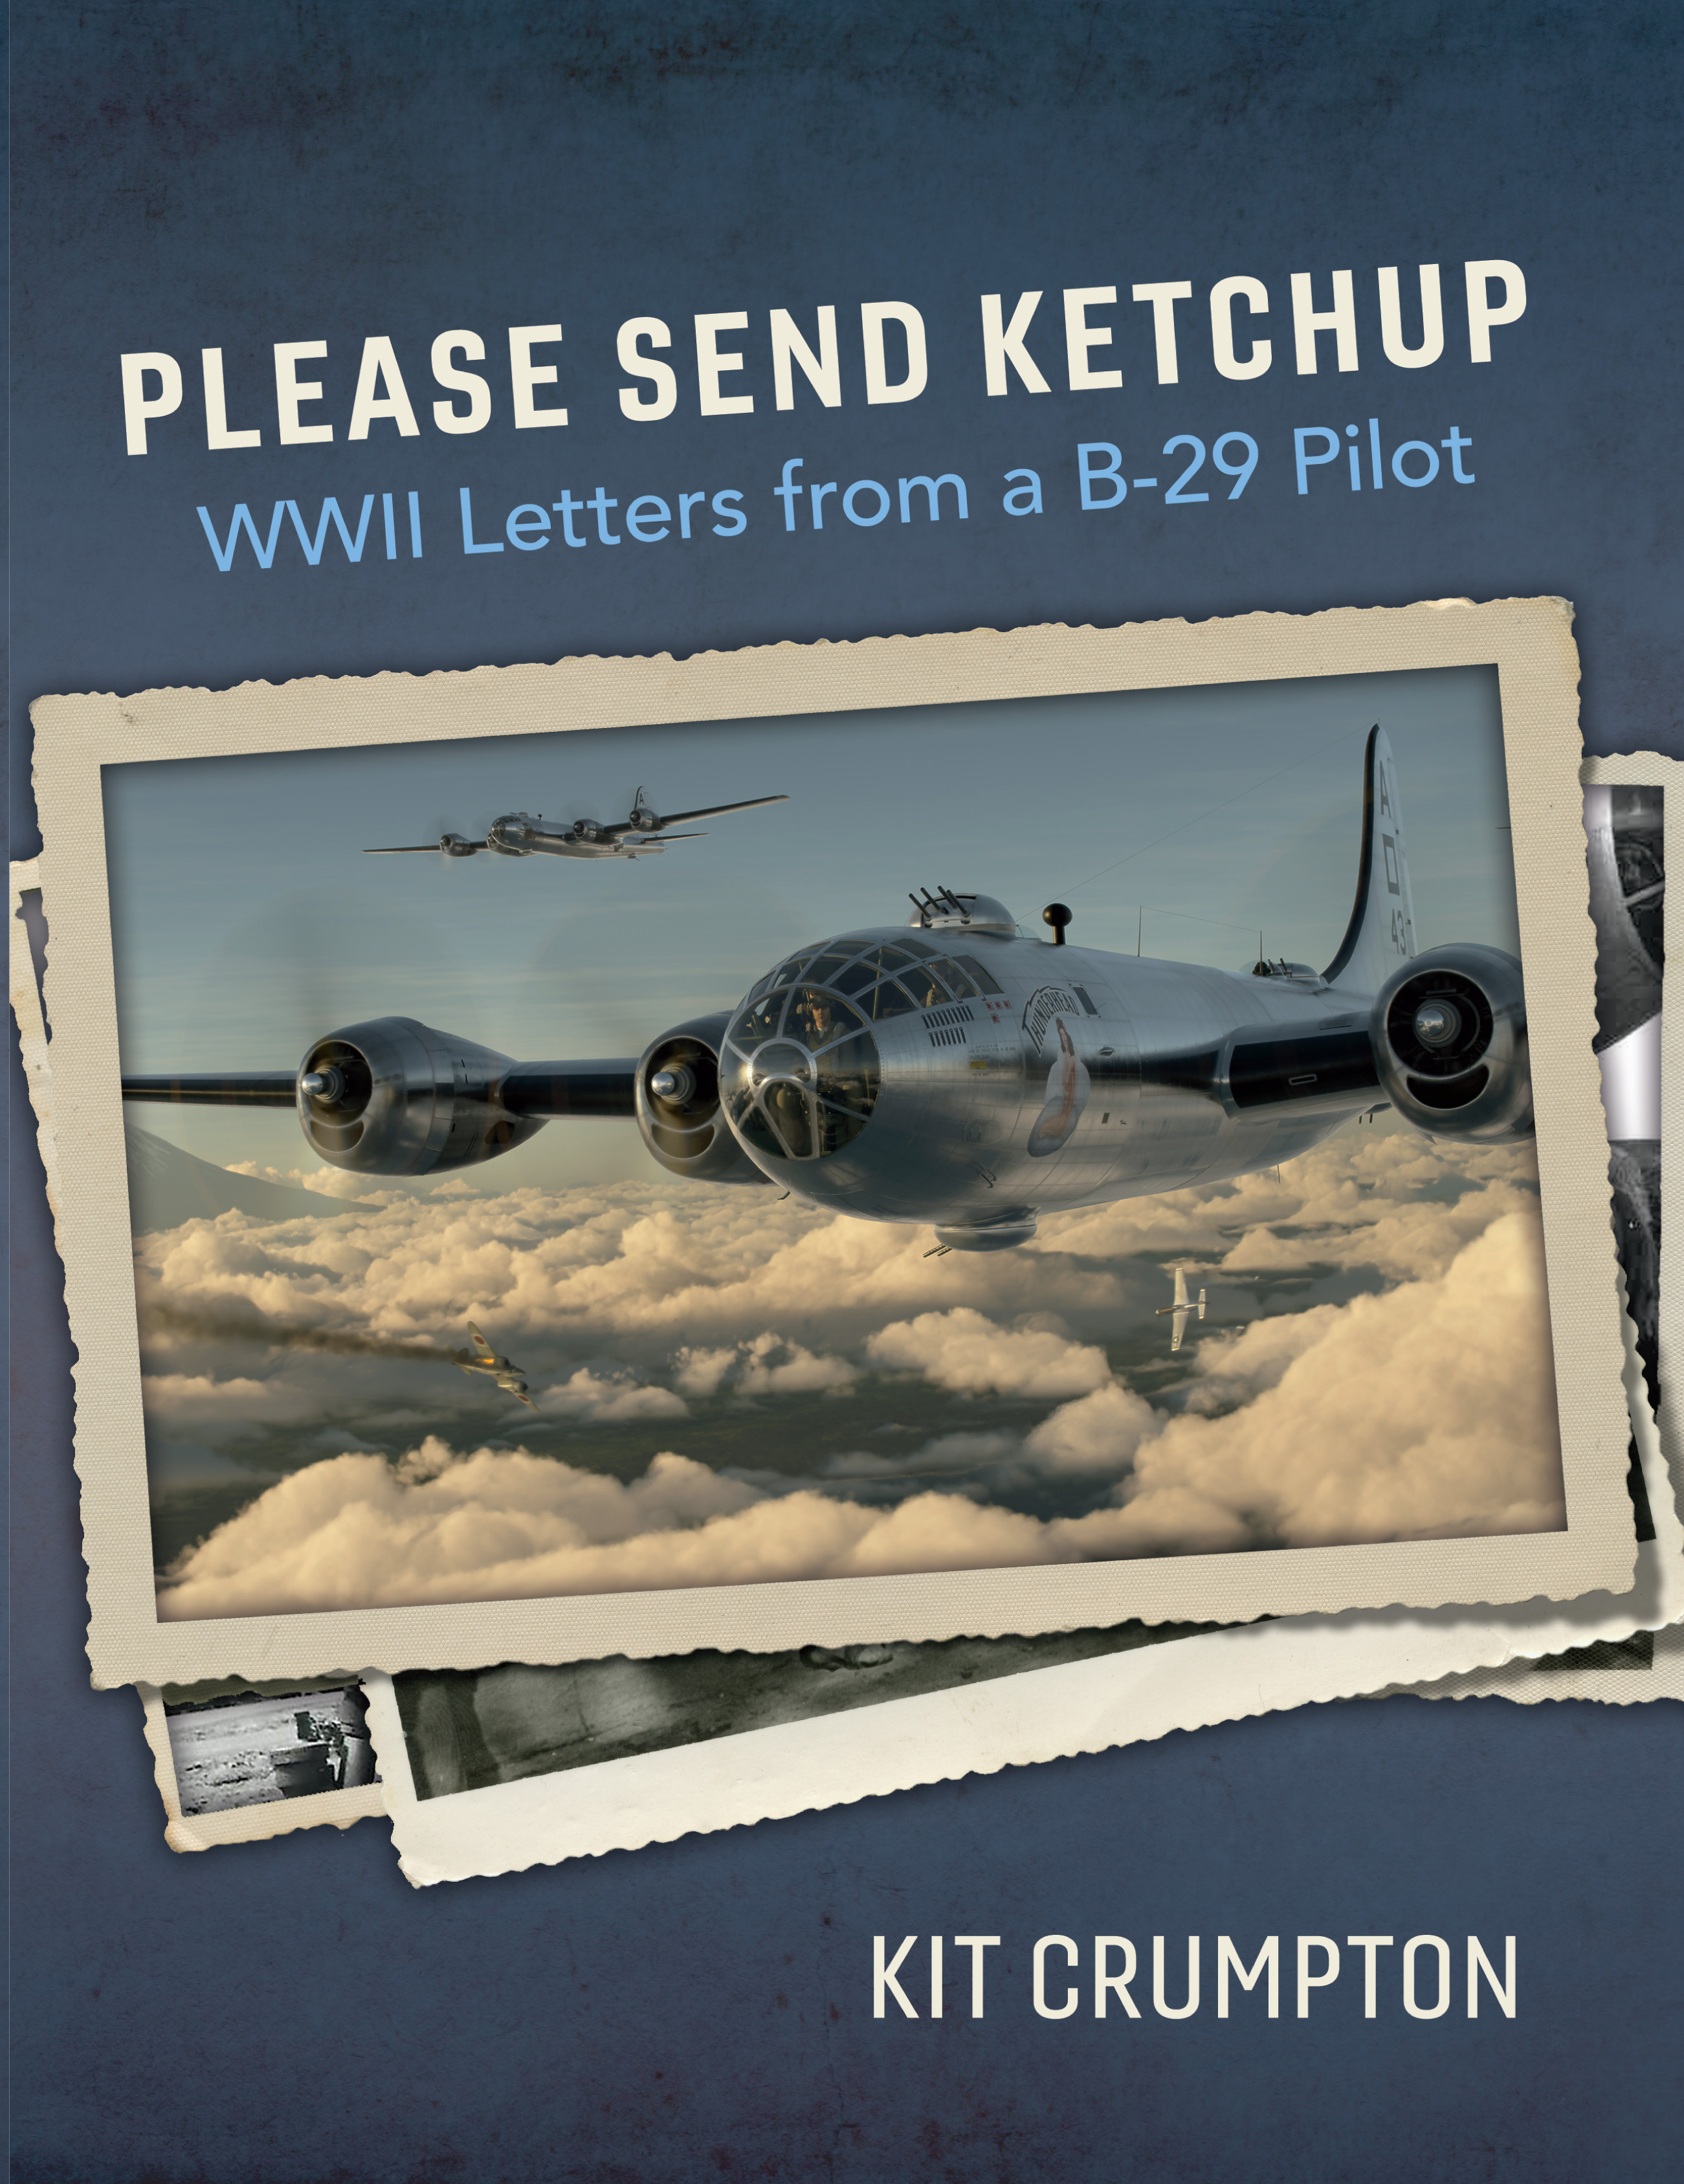 Please Send Ketchup WWII Letters from a B-29 Pilot by Kit Crumpton Book Cover